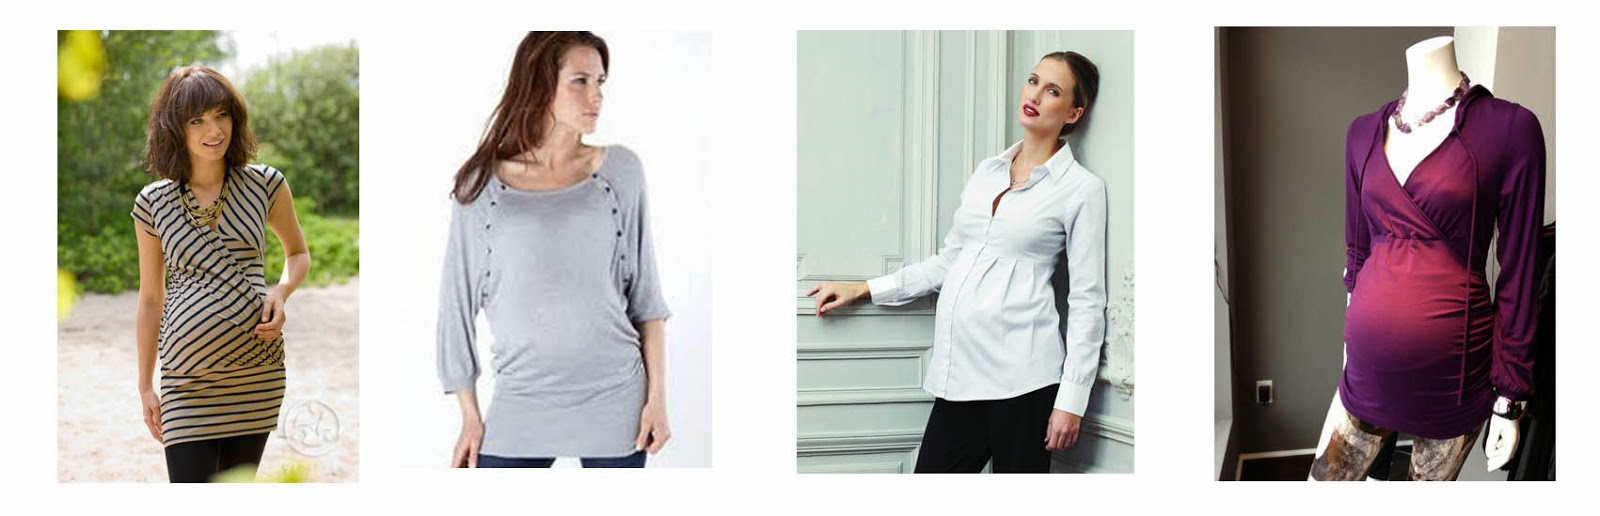 Cheap maternity dresses canada - Dressed for less